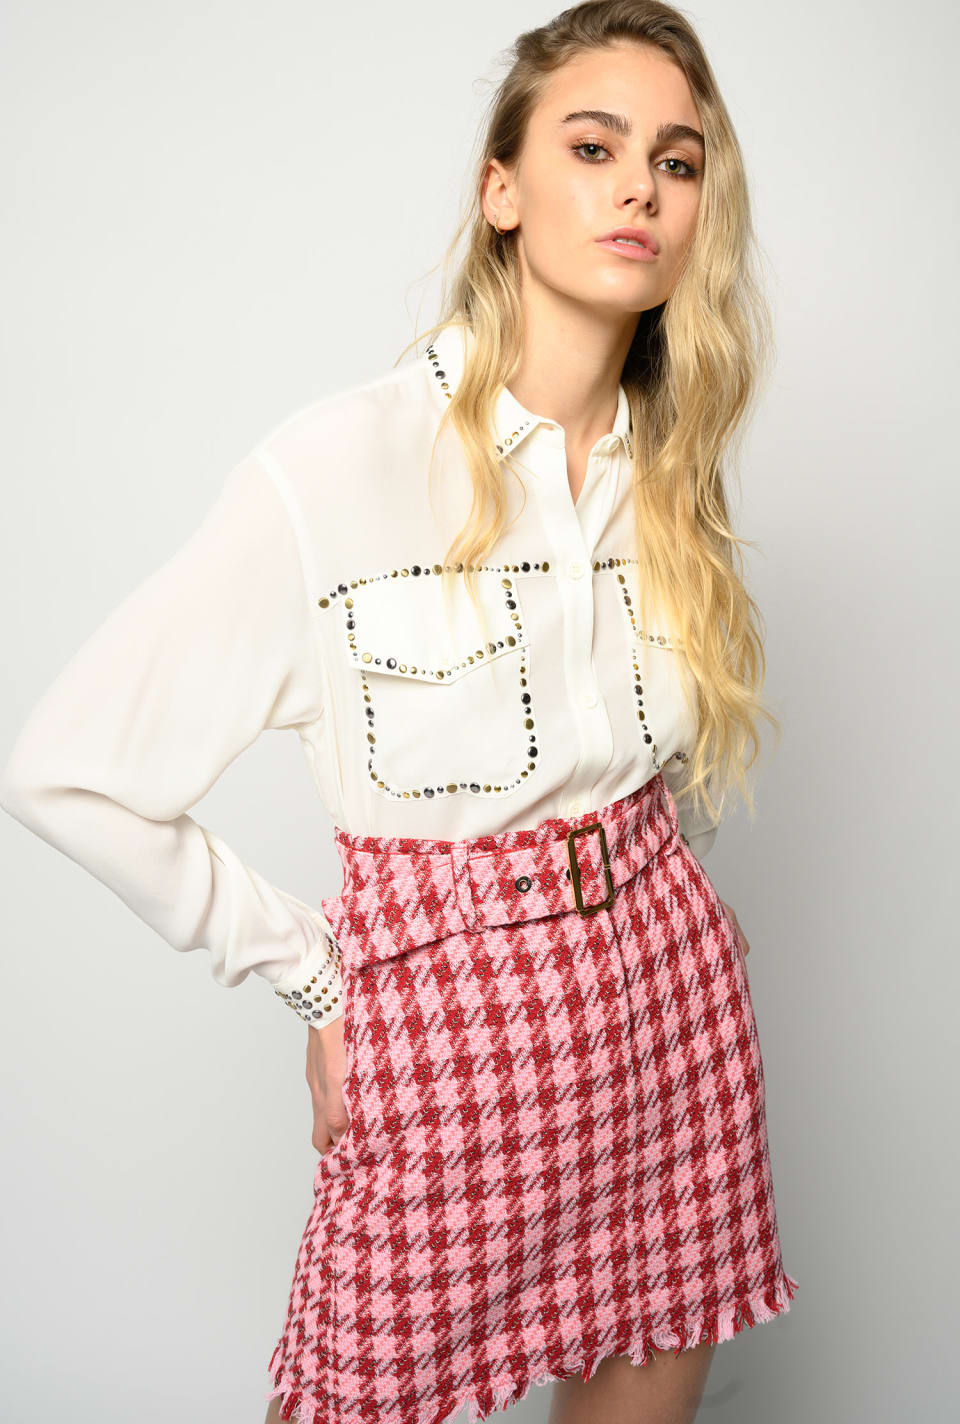 Shirt with studs - Pinko